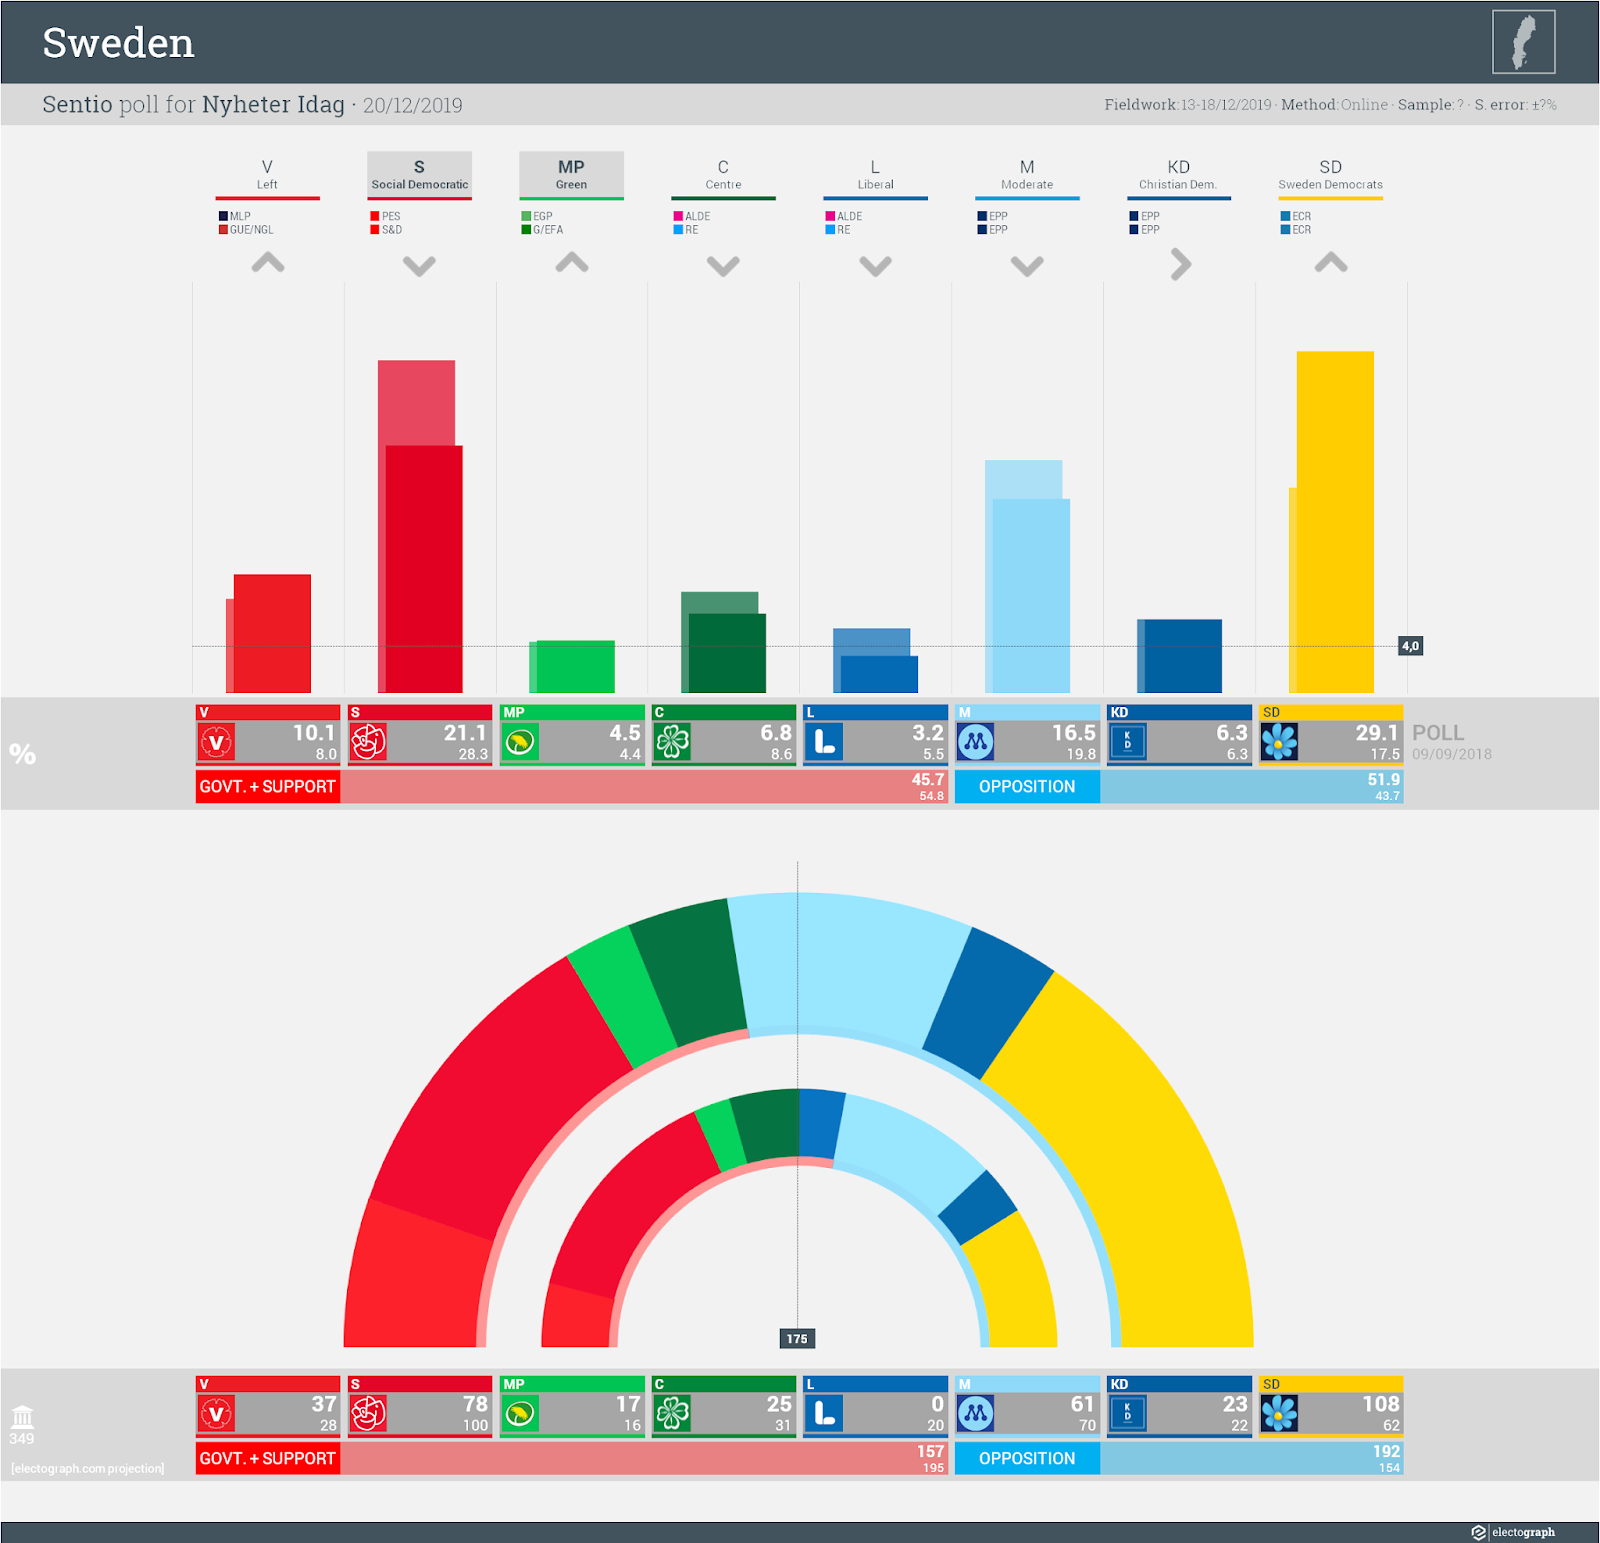 SWEDEN: Sentio poll chart for Nyheter Idag, 20 December 2019